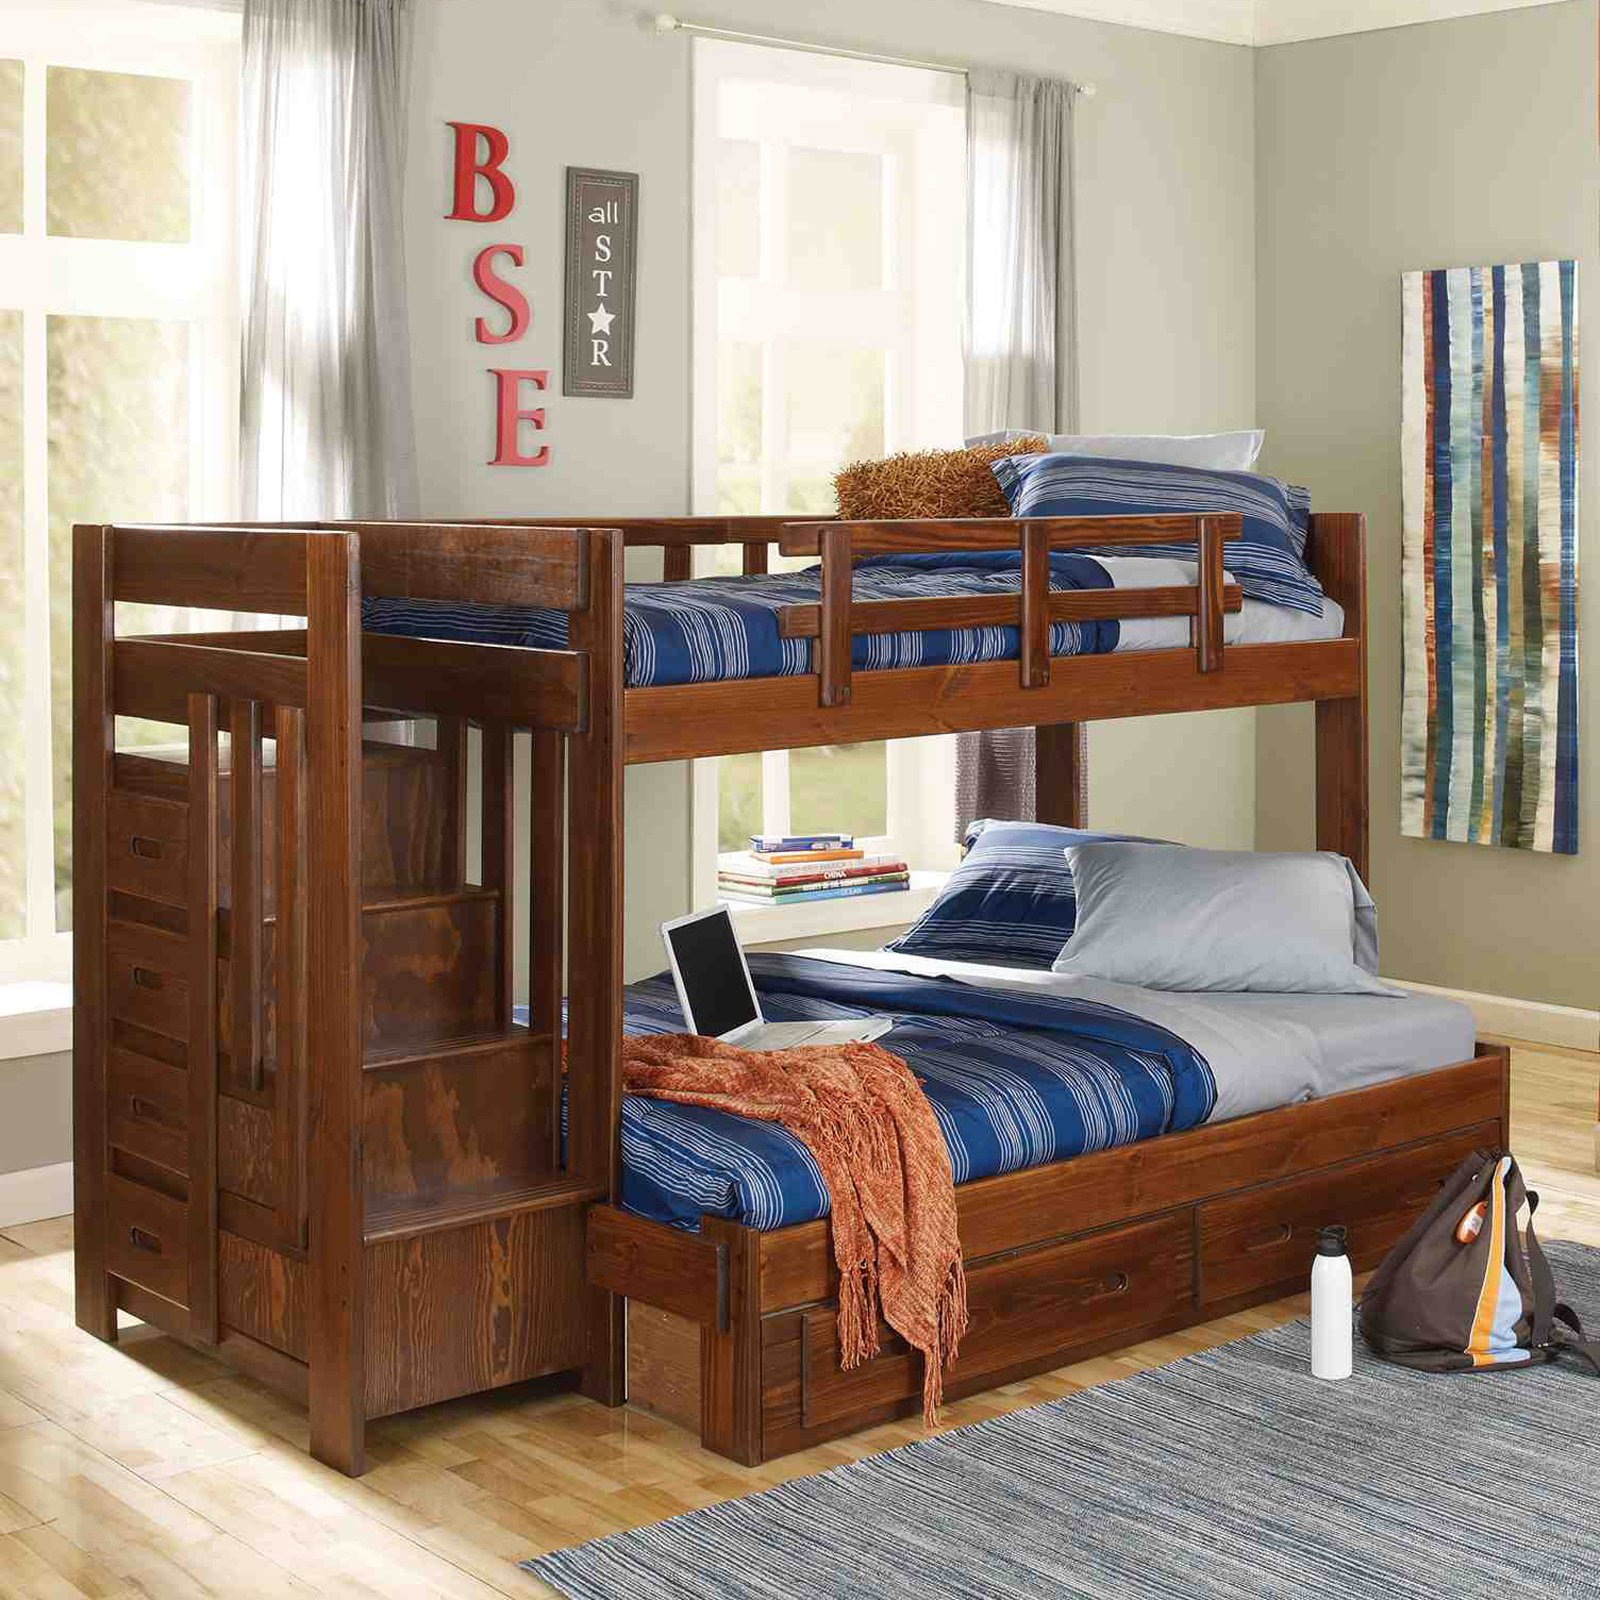 Picture of: Boys Twin over Full Bunk Bed with Storage